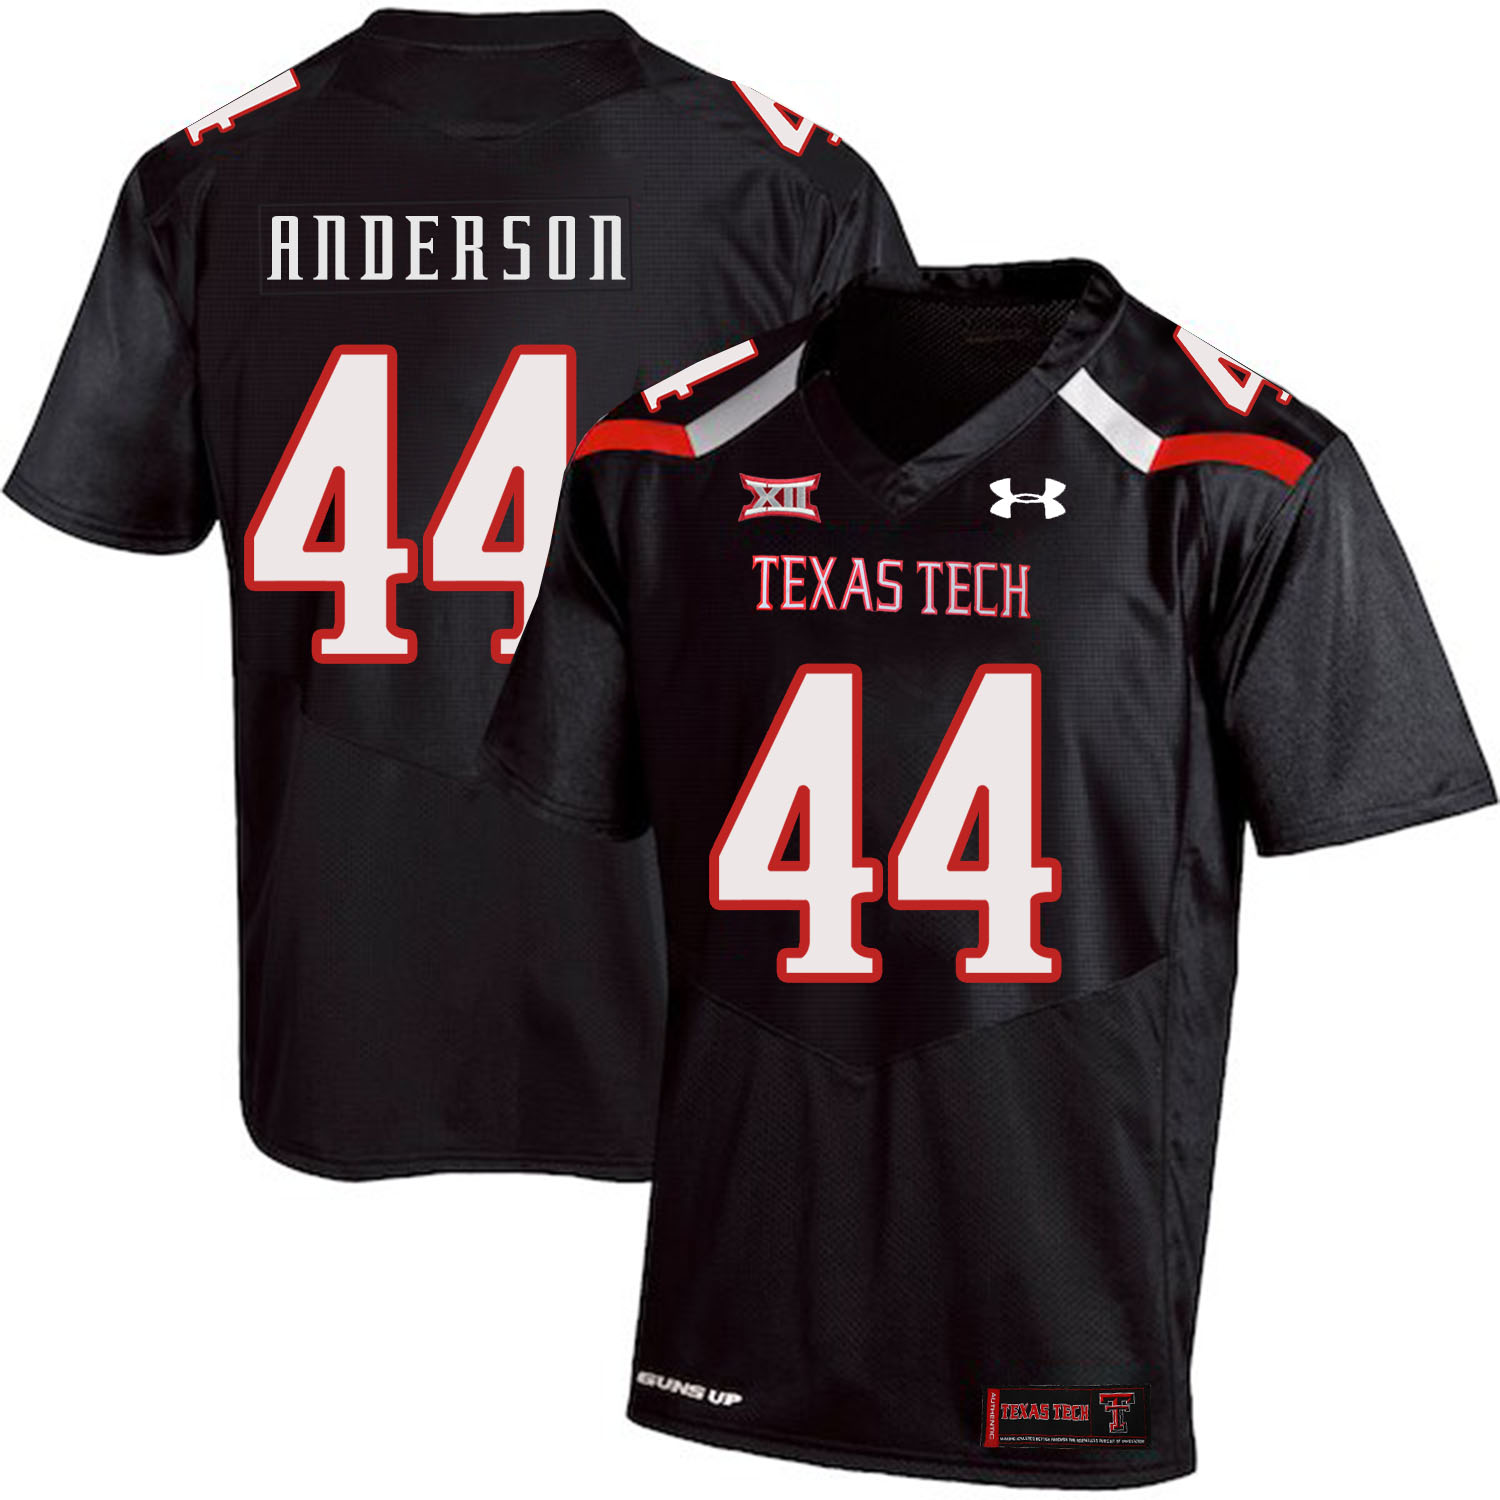 Texas Tech Red Raiders 44 Donny Anderson Black College Football Jersey